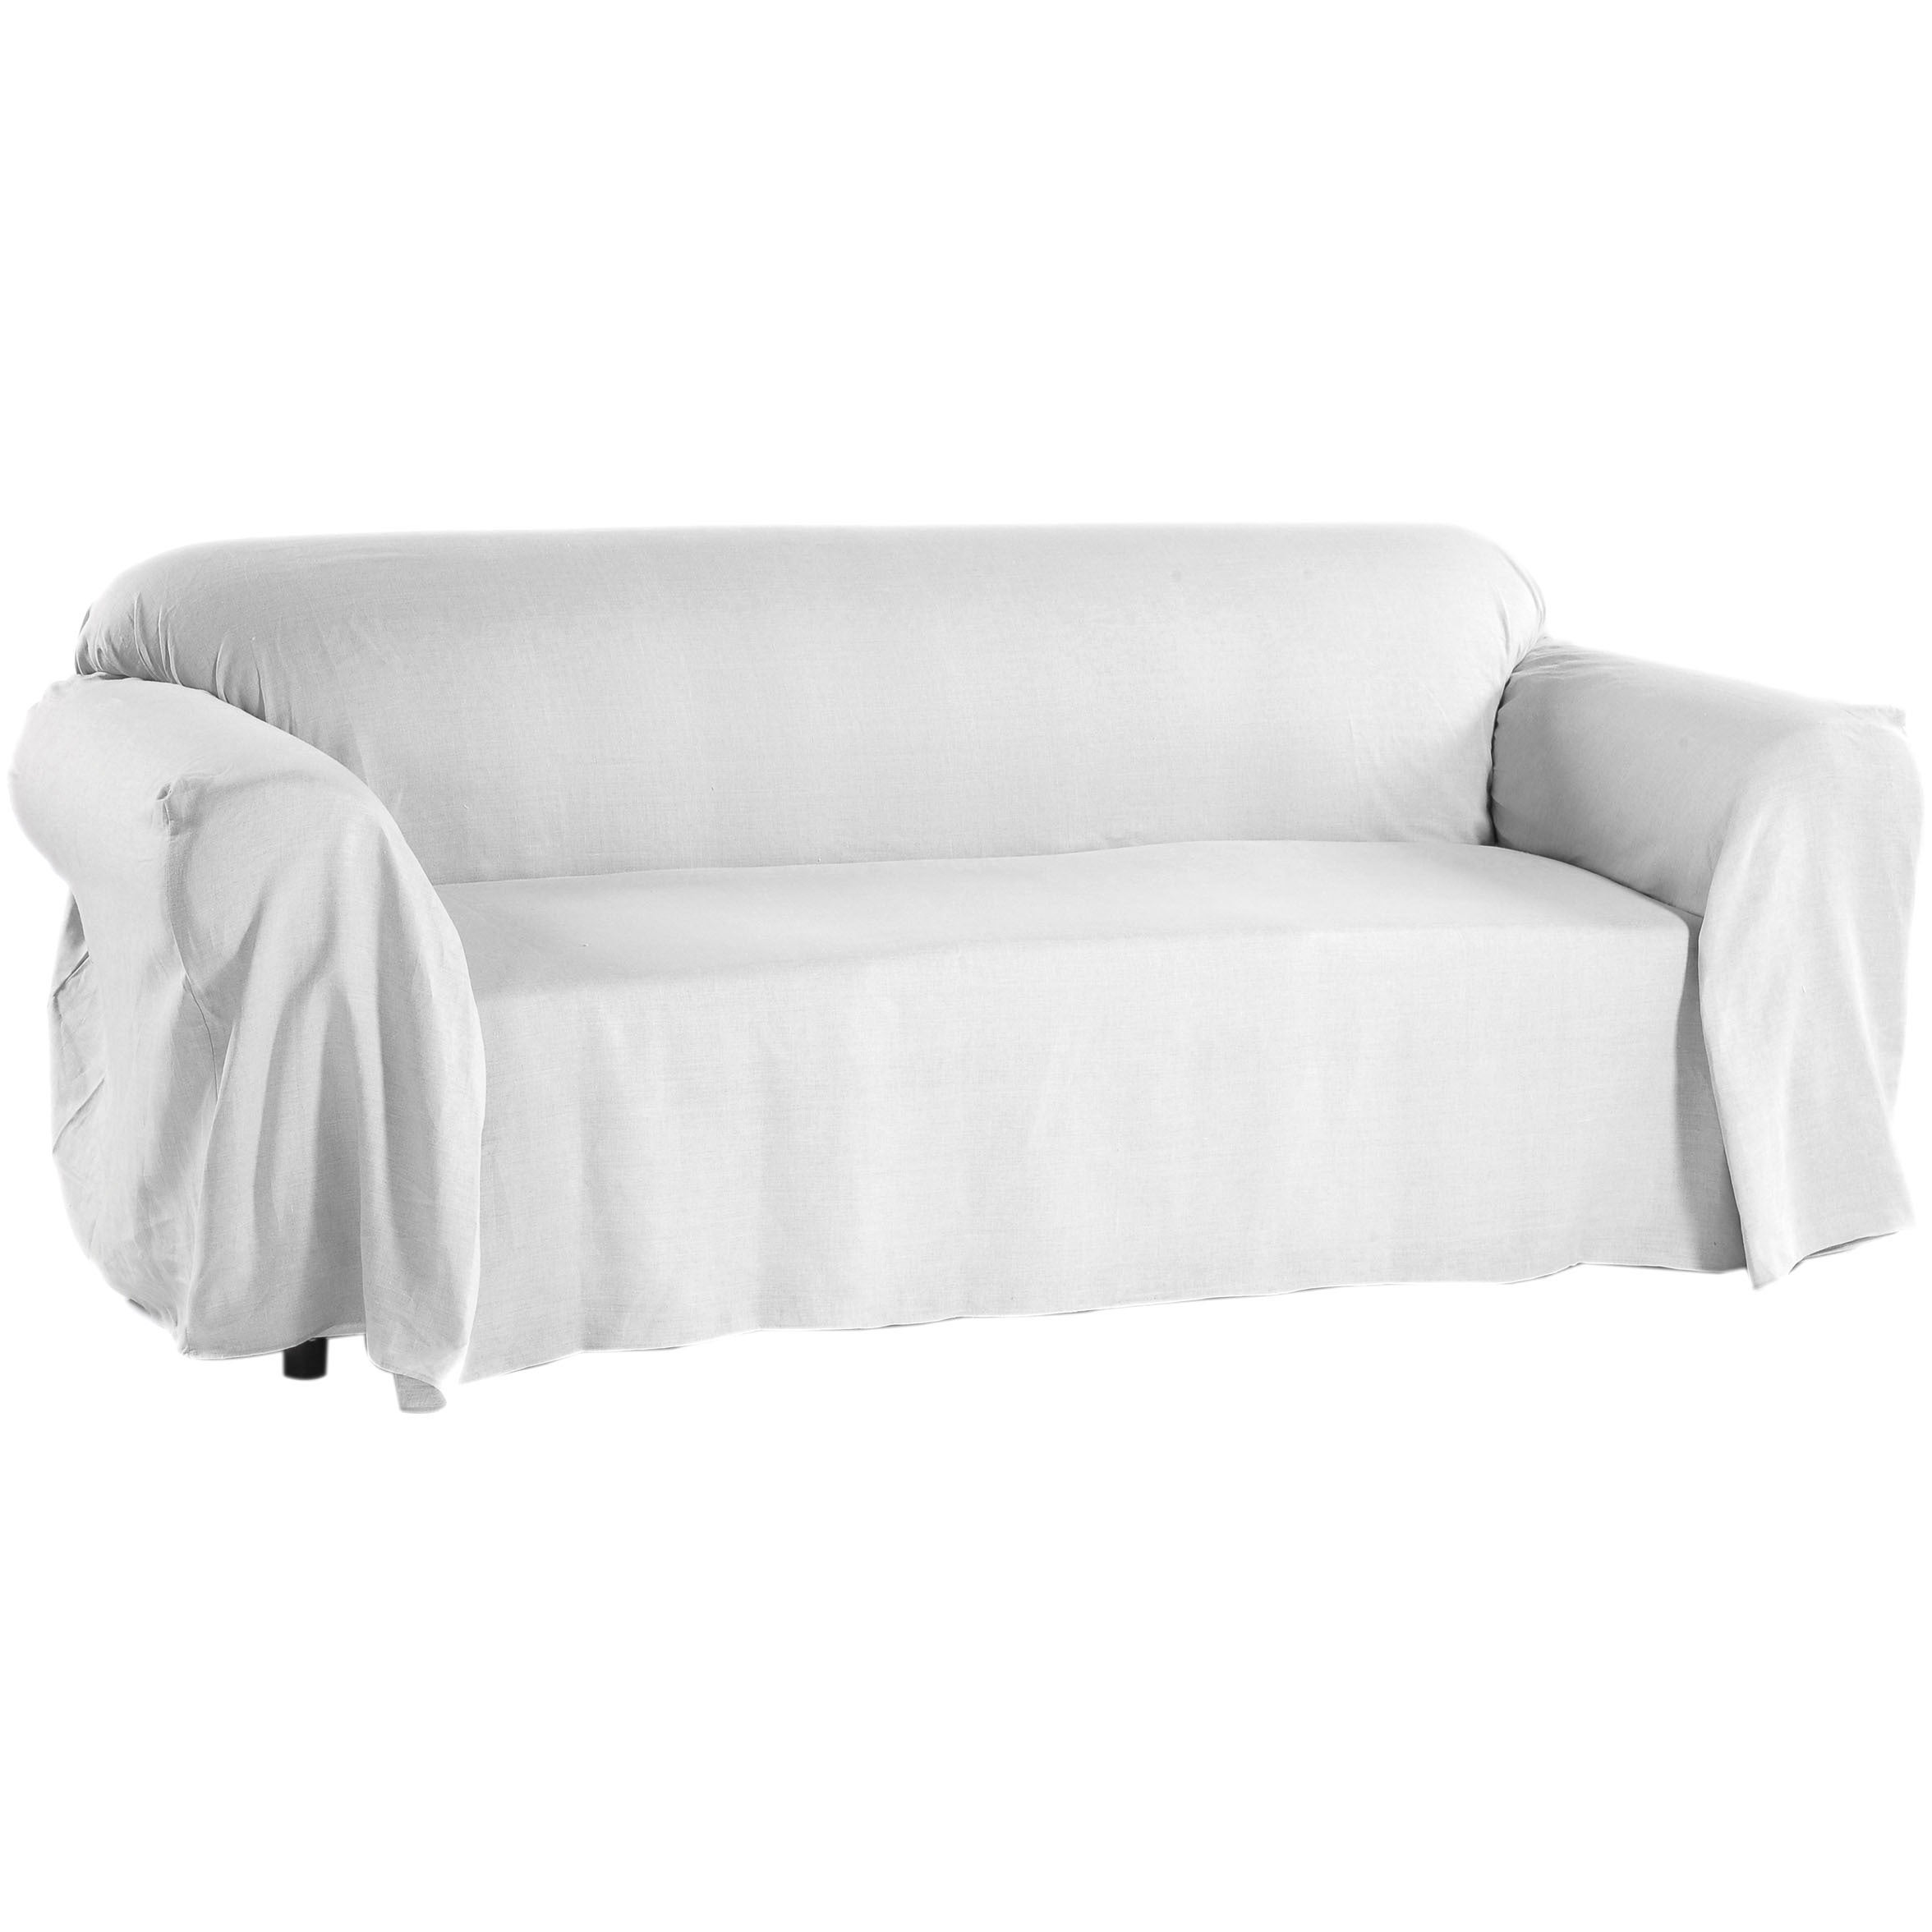 Washed Linen Sofa Slipcover Throw